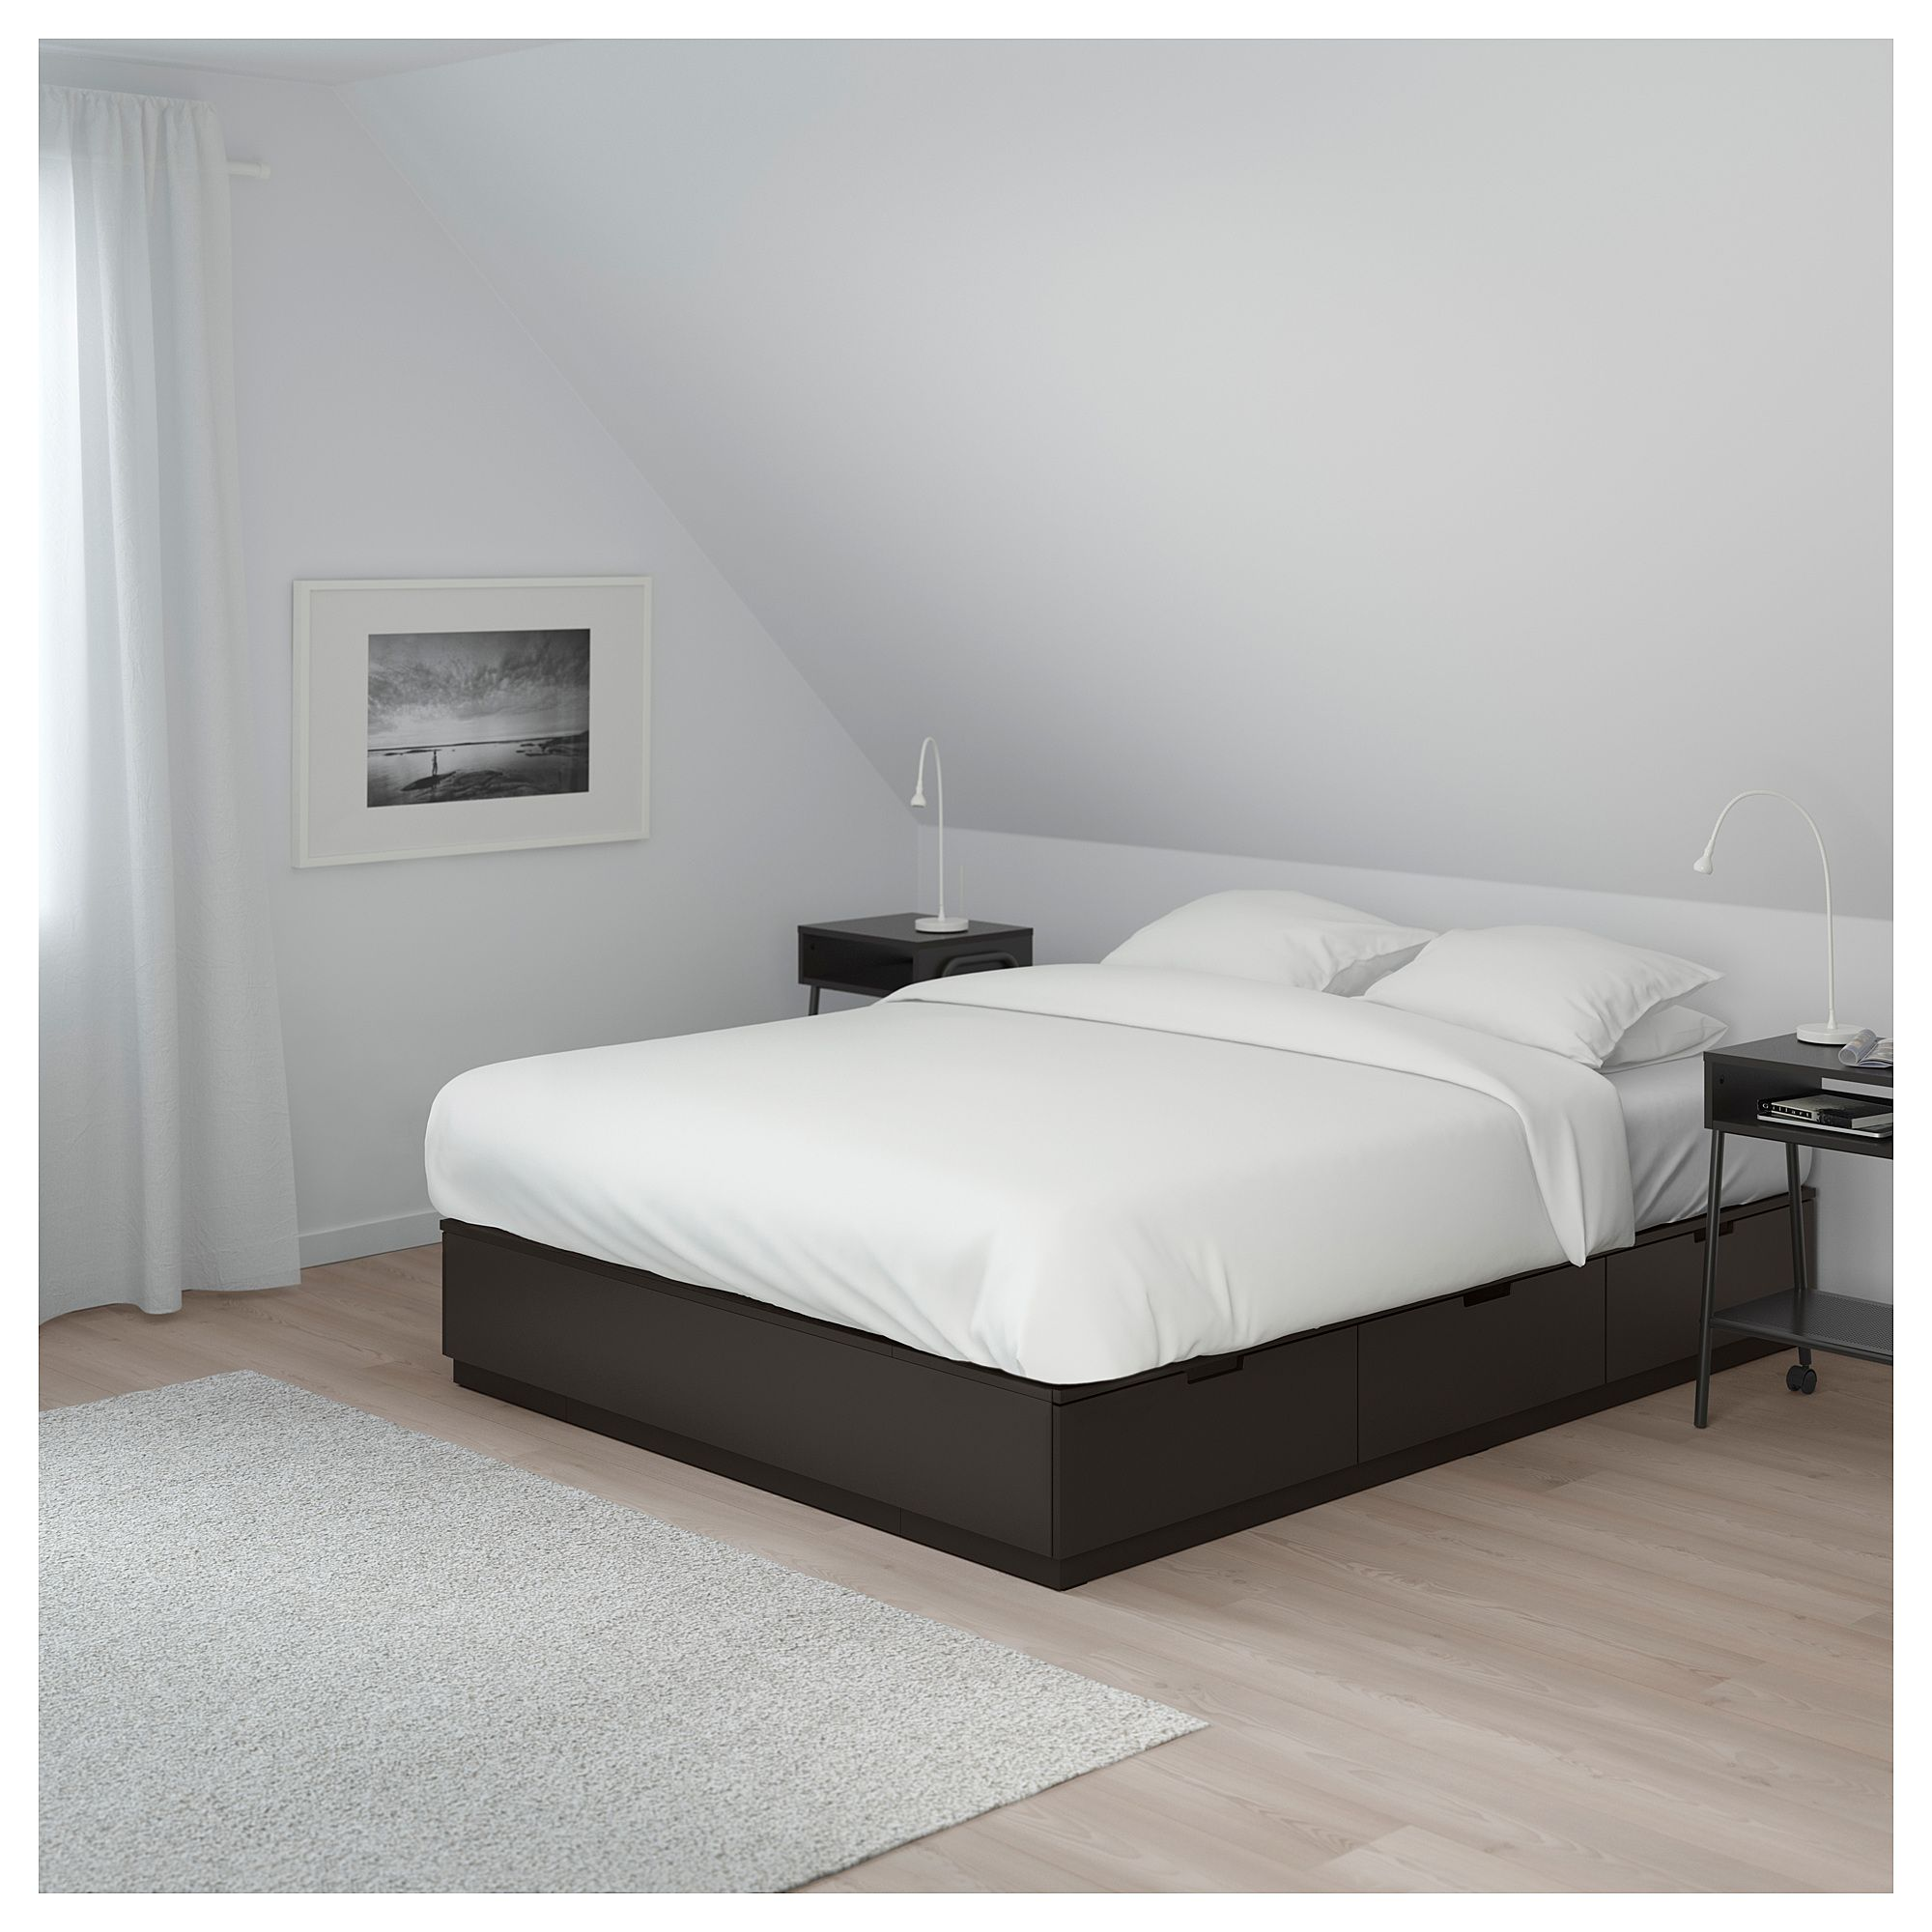 NORDLI Bed frame with storage anthracite Queen (160x200